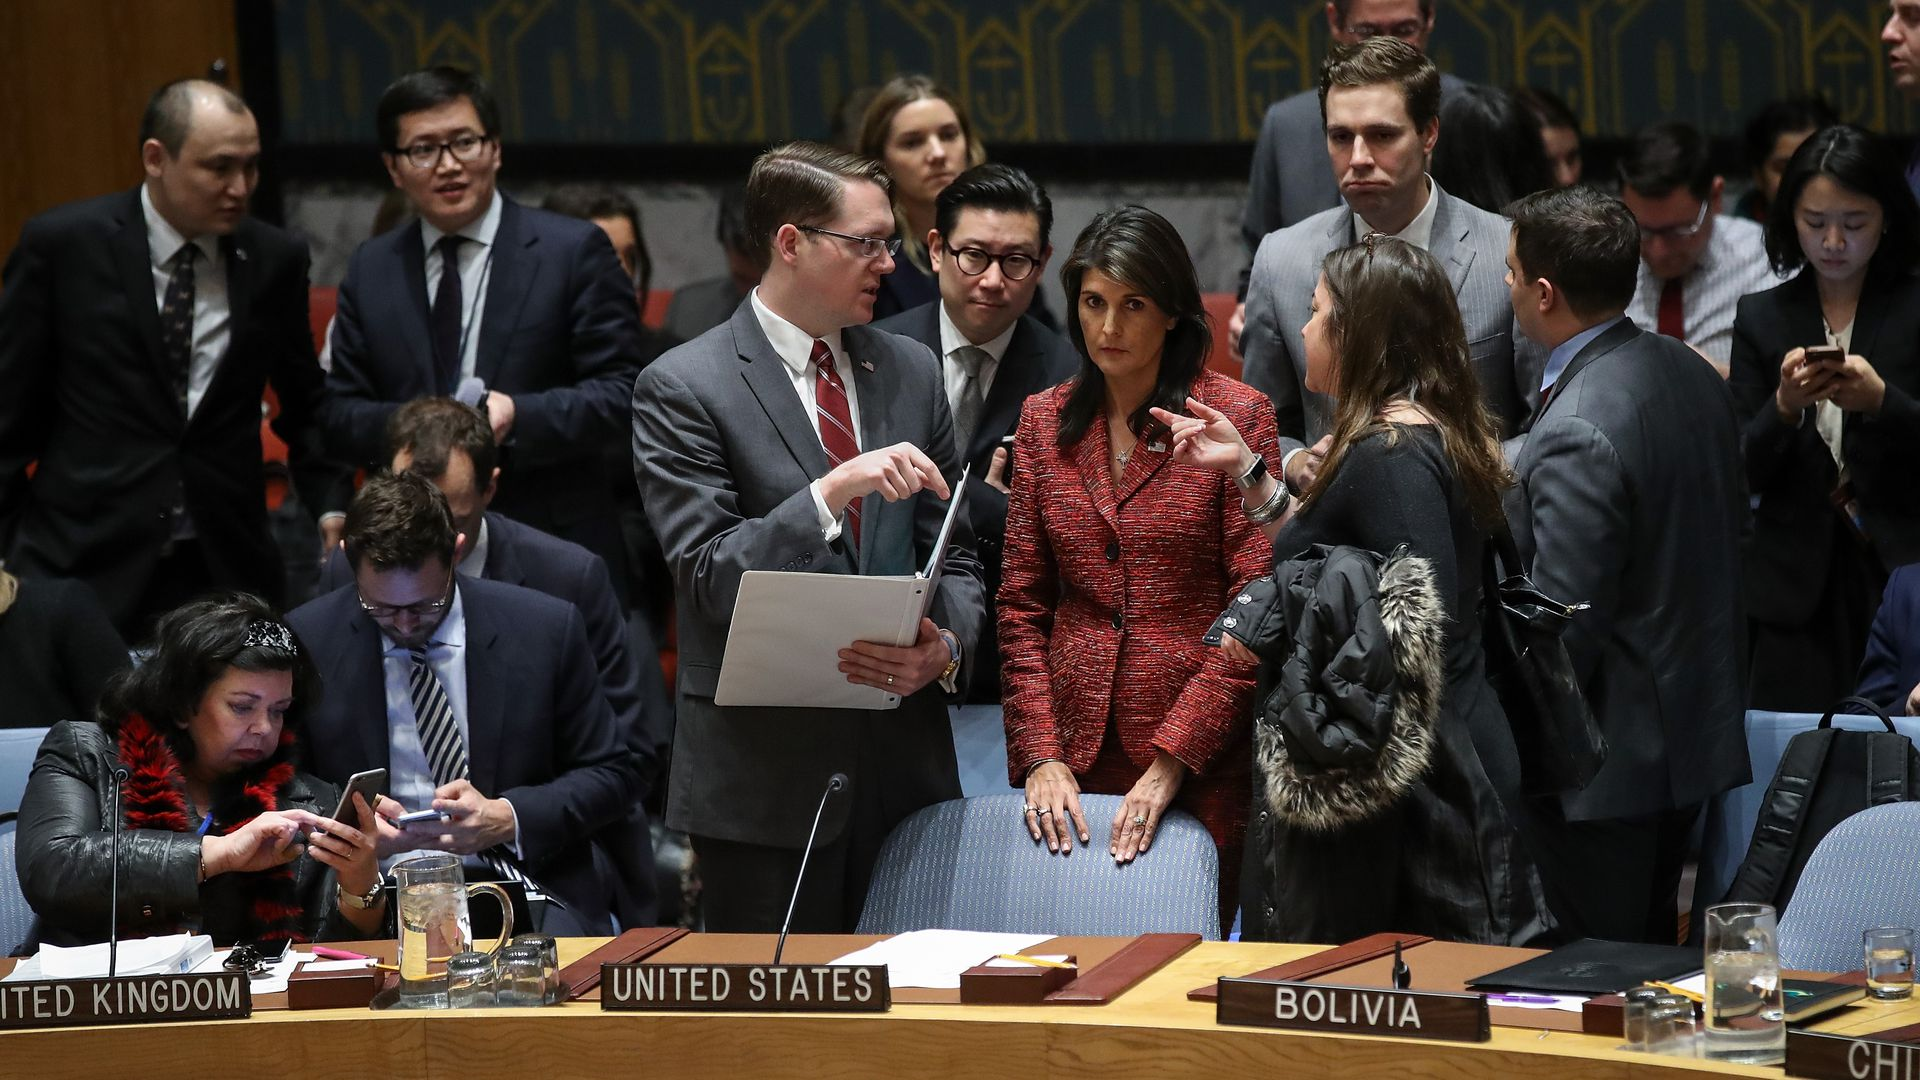 United States Ambassador to the United Nations Nikki Haley confers with members of the U.S. delegation at the start of a United Nations Security Council meeting regarding the situation in Syria